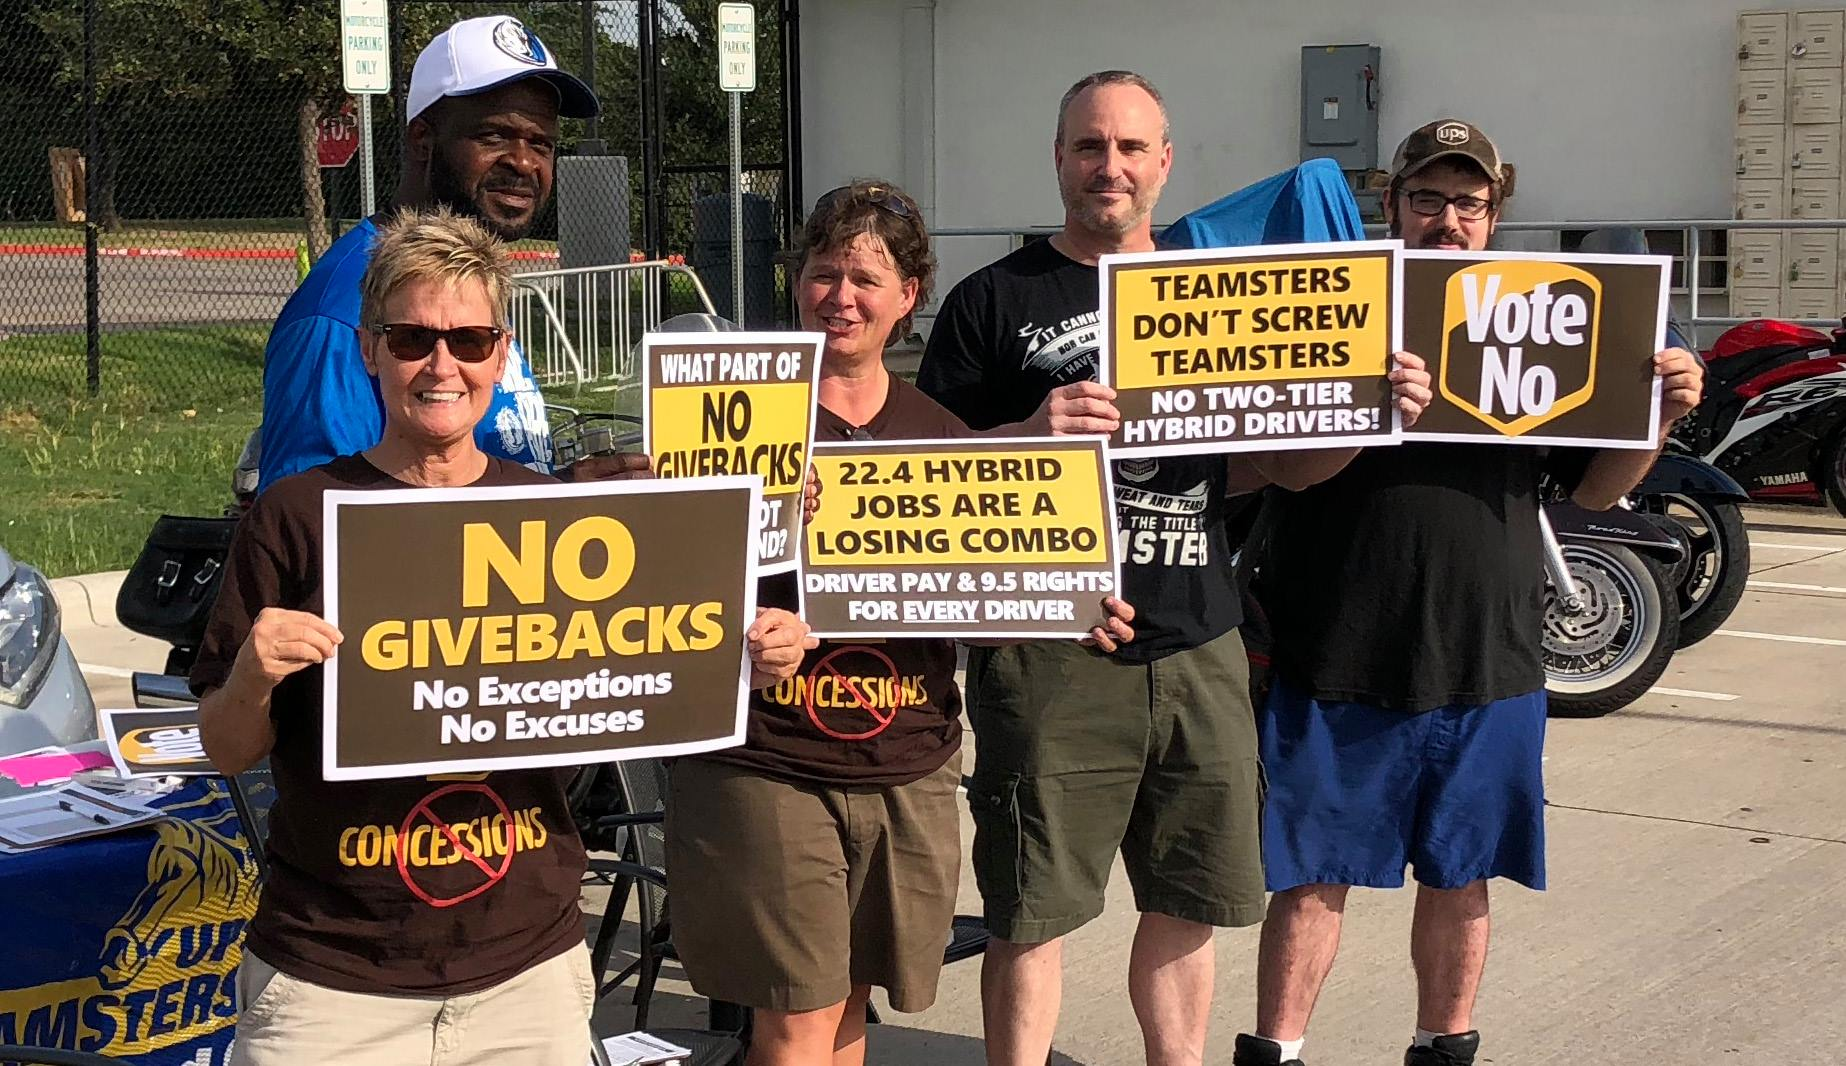 Teamsters Impose Another Supplemental Contract On UPS Workers